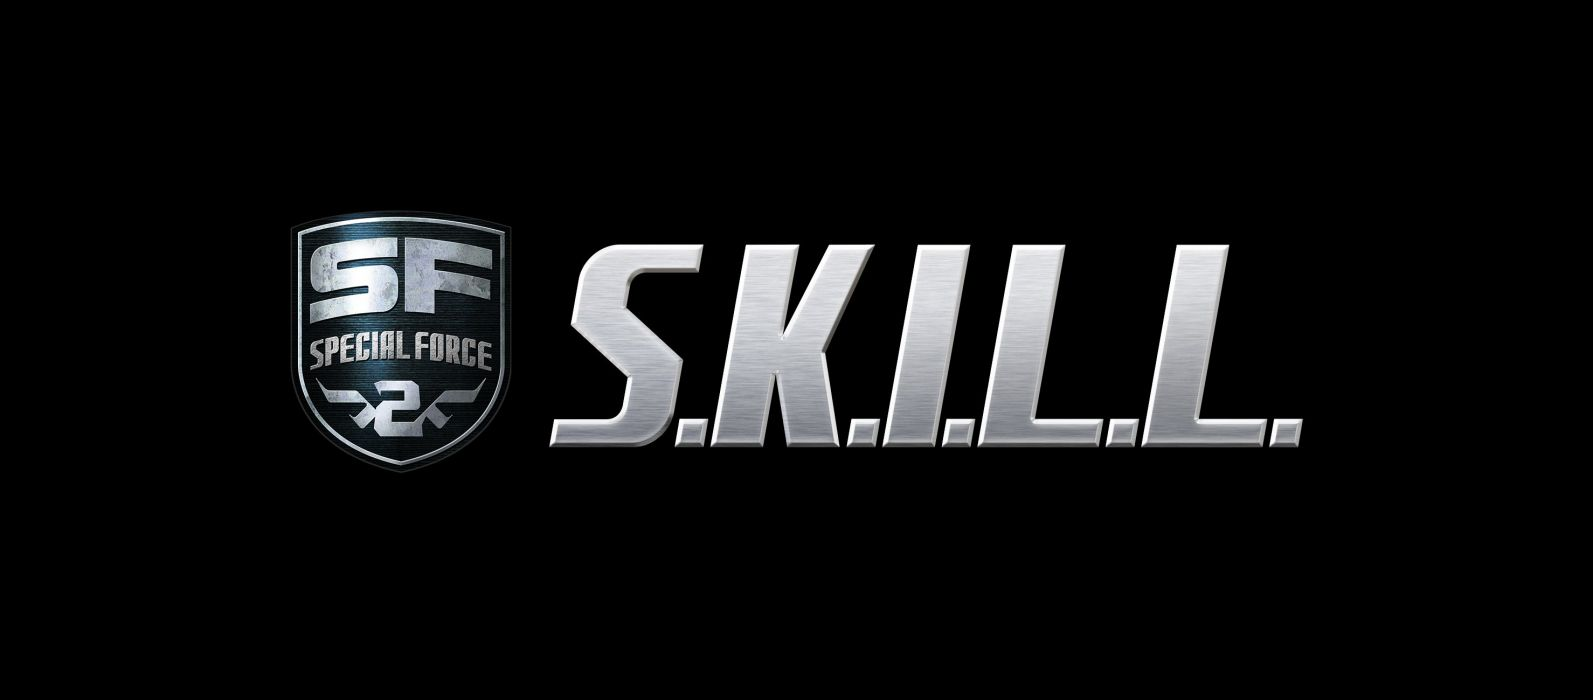 SKILL SPECIAL FORCE military fps shooter action fighting war soldier 1sforce strategy tactical warrior poster wallpaper